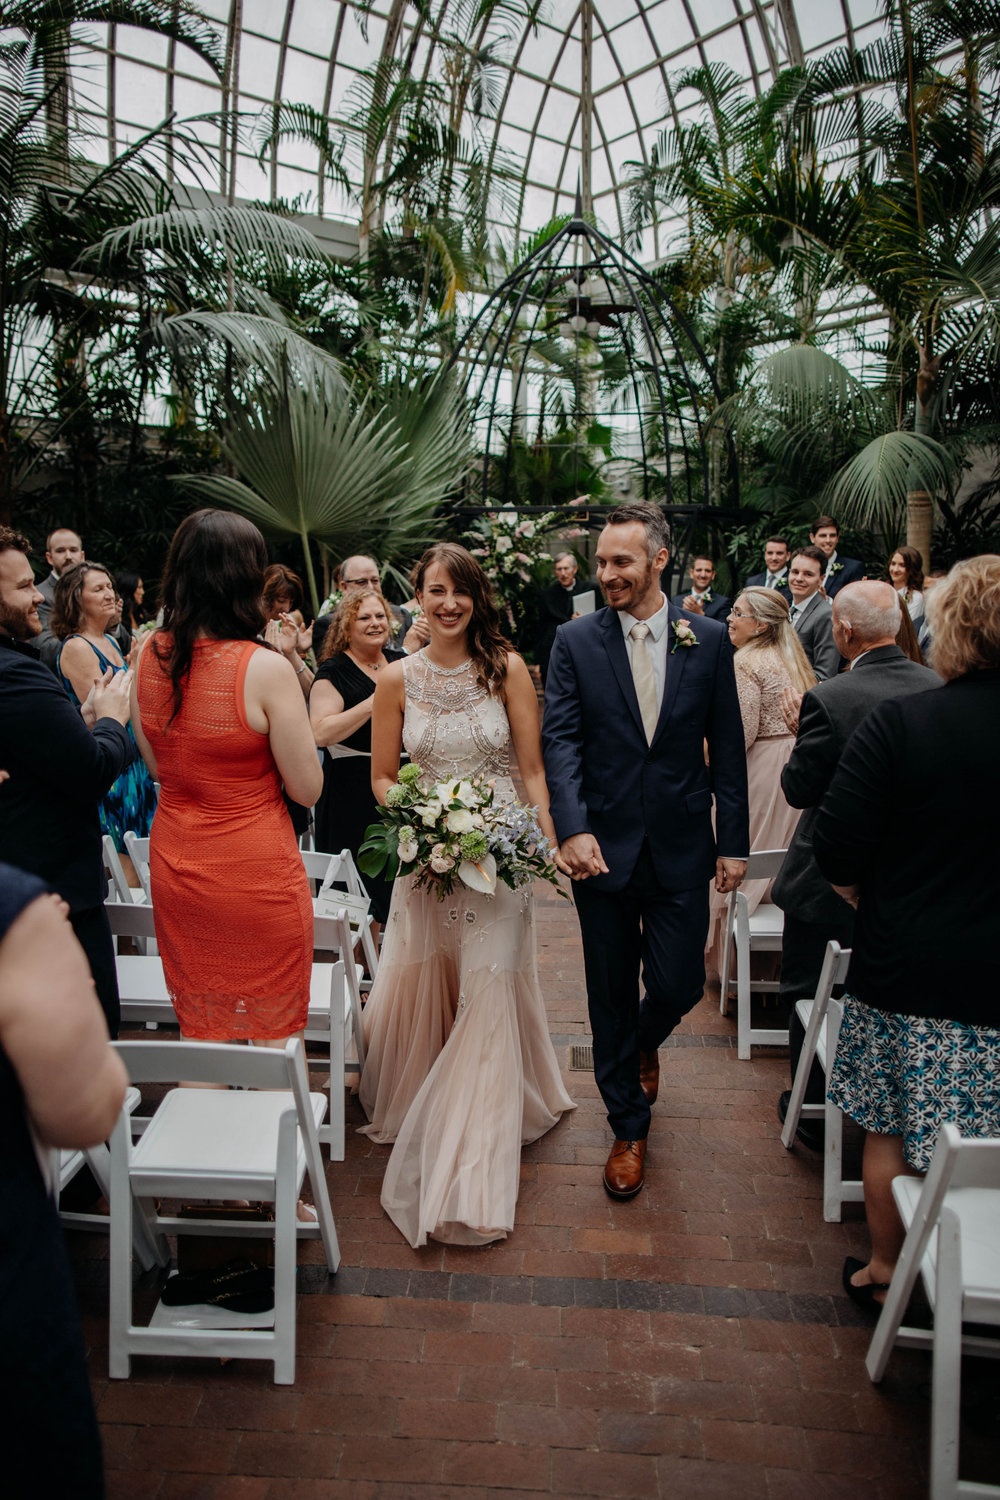 franklin park conservatory wedding columbus ohio wedding photographer grace e jones photography227.jpg